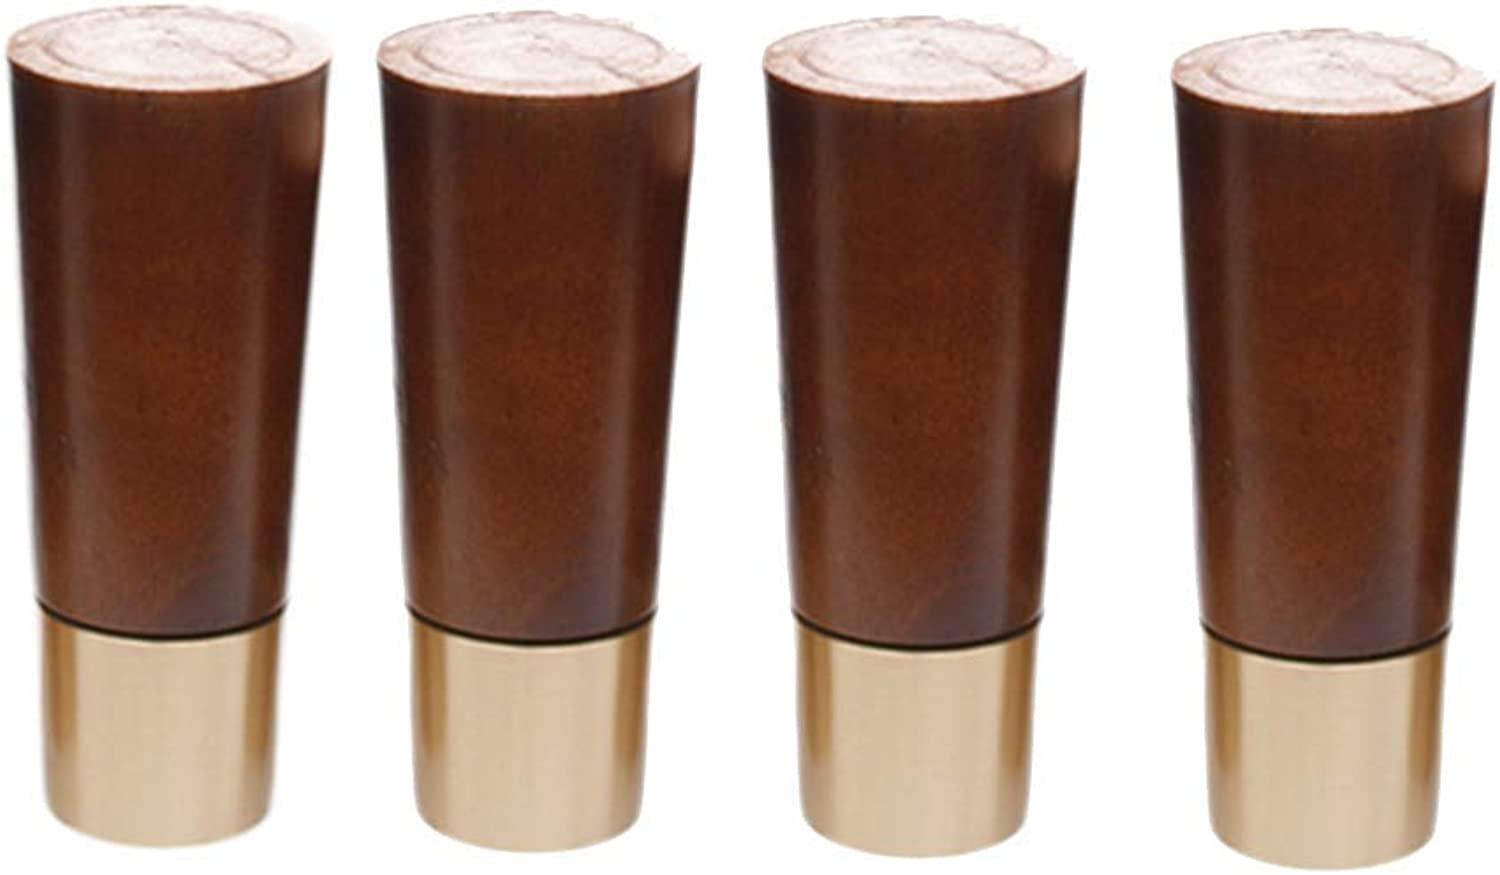 Brass Wood Furniture Feet Solid Wood Sofa Legs with Copper Sleeves, Coffee Table Bedside Table Heightening Feet